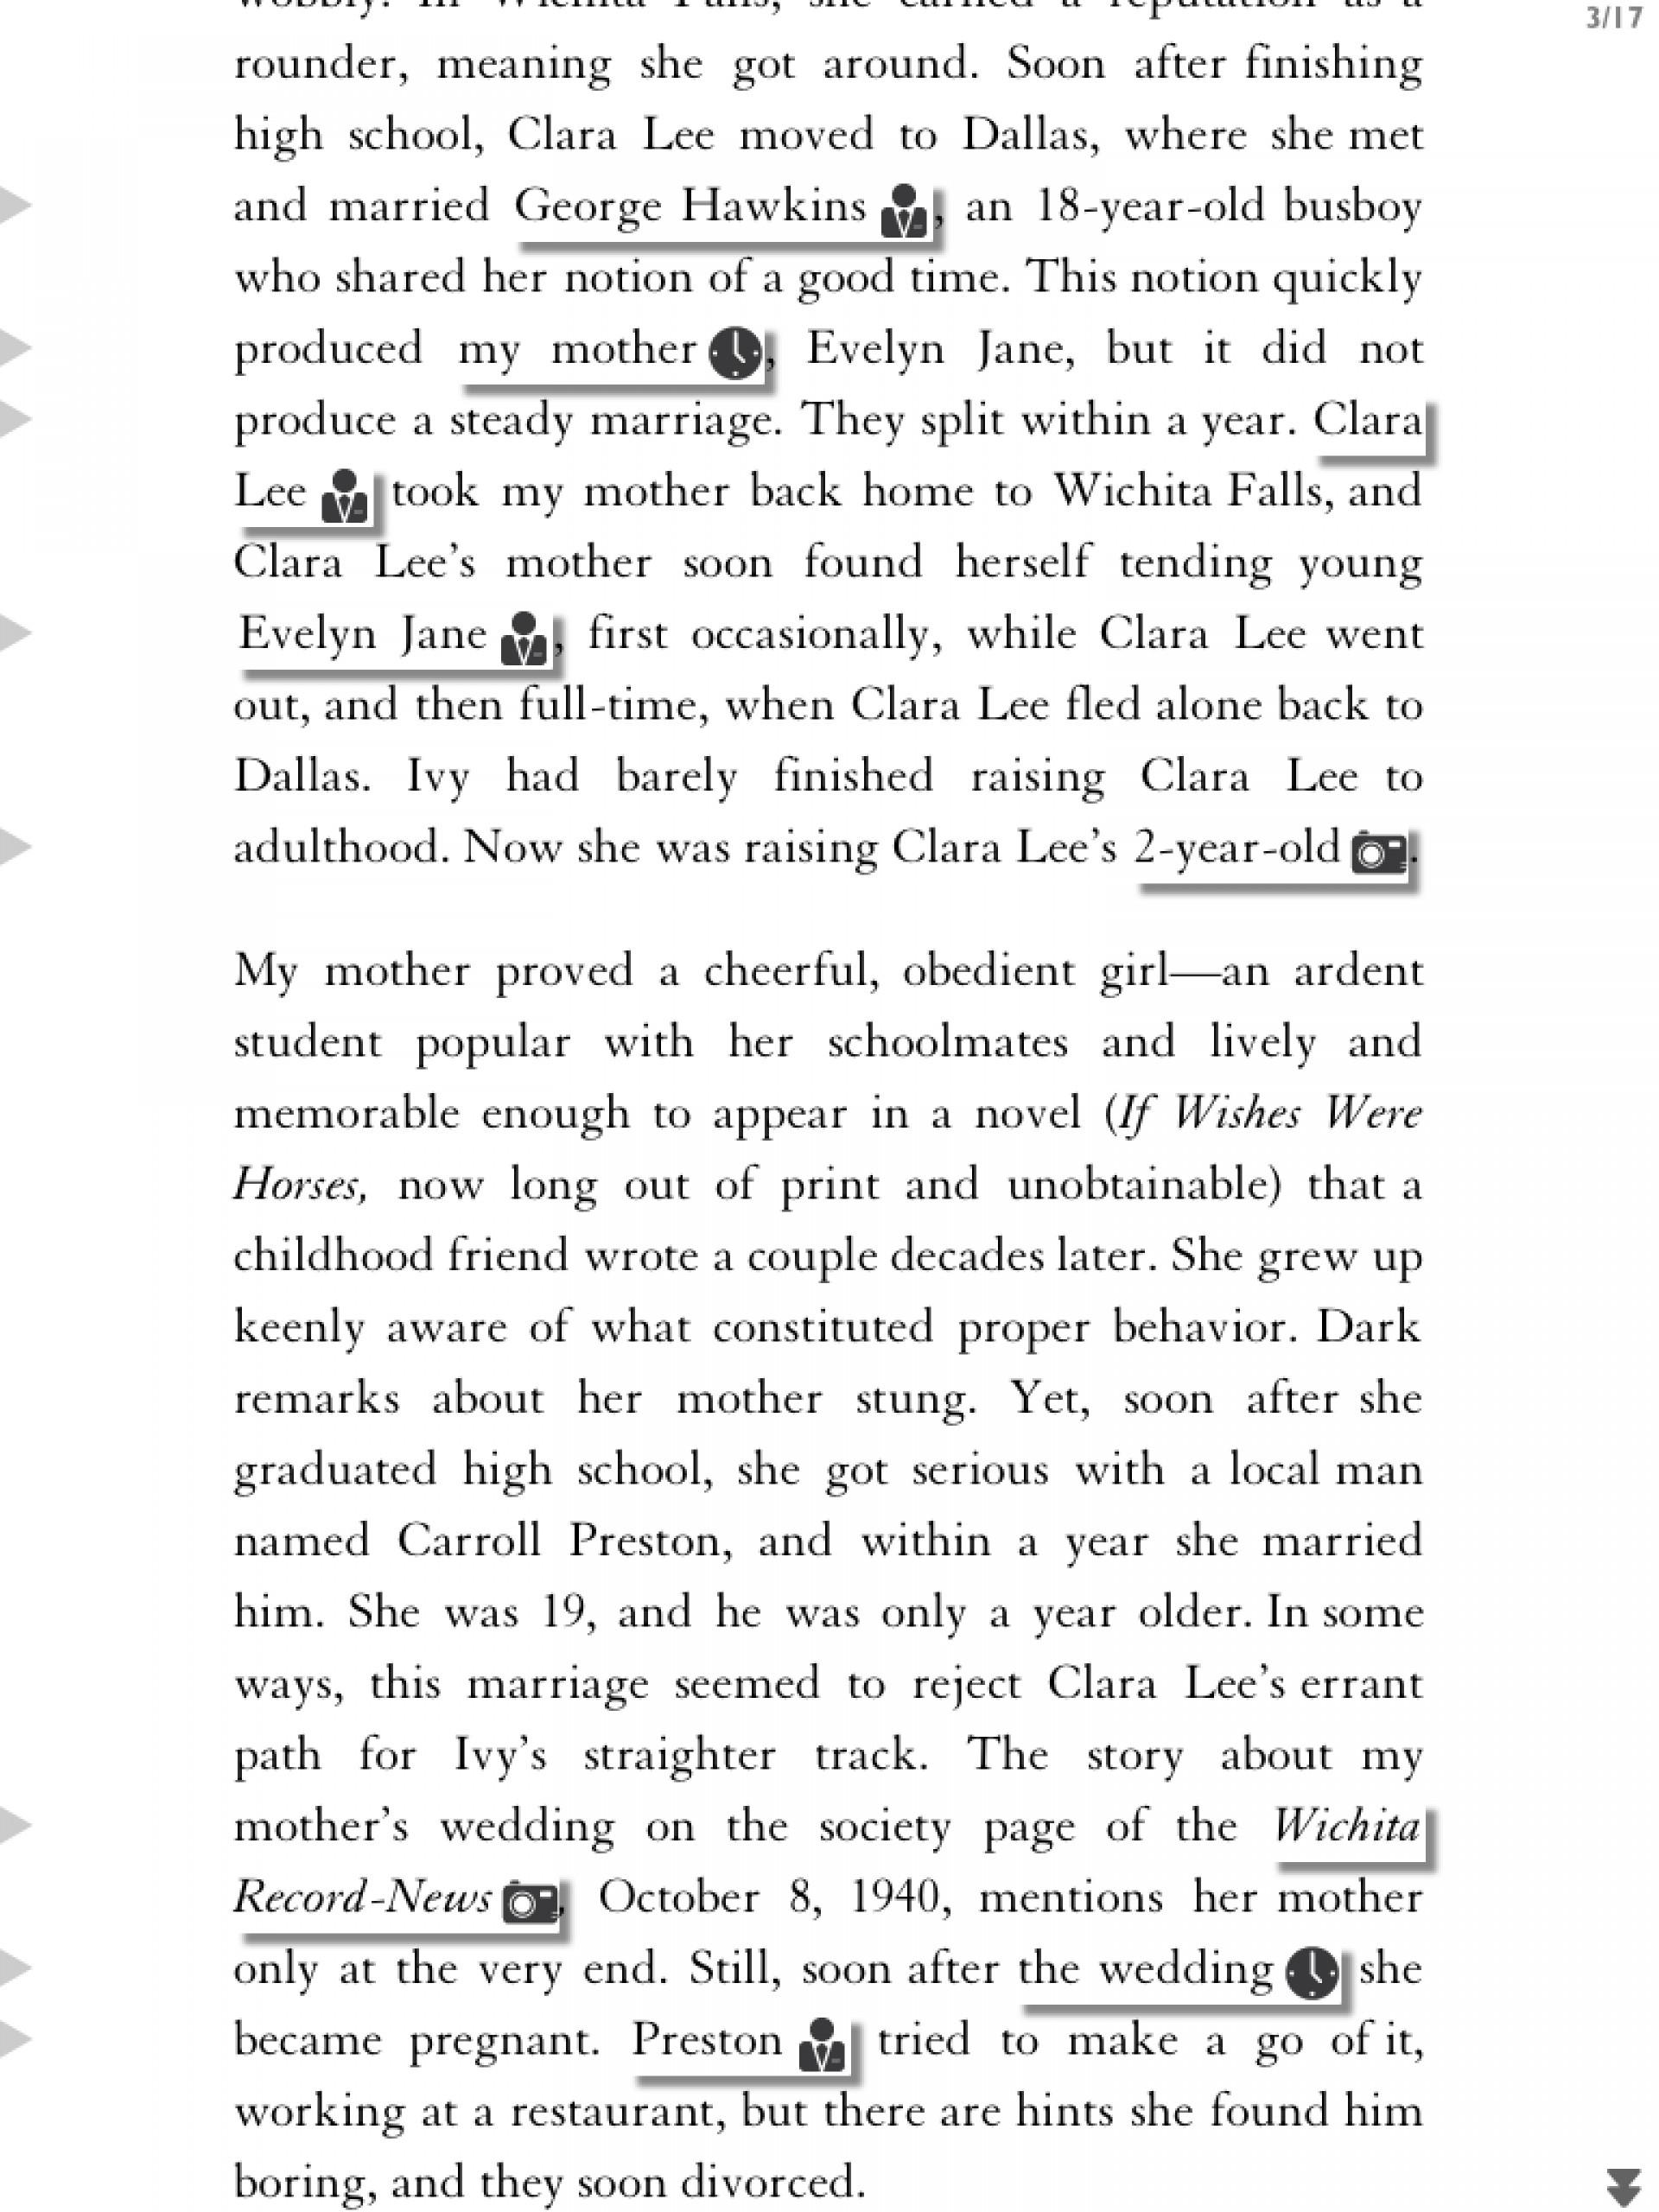 011 Essay On My Father Hero Fathermy About L An Fascinating Heroine Teacher 500 Words A Narrative 1920